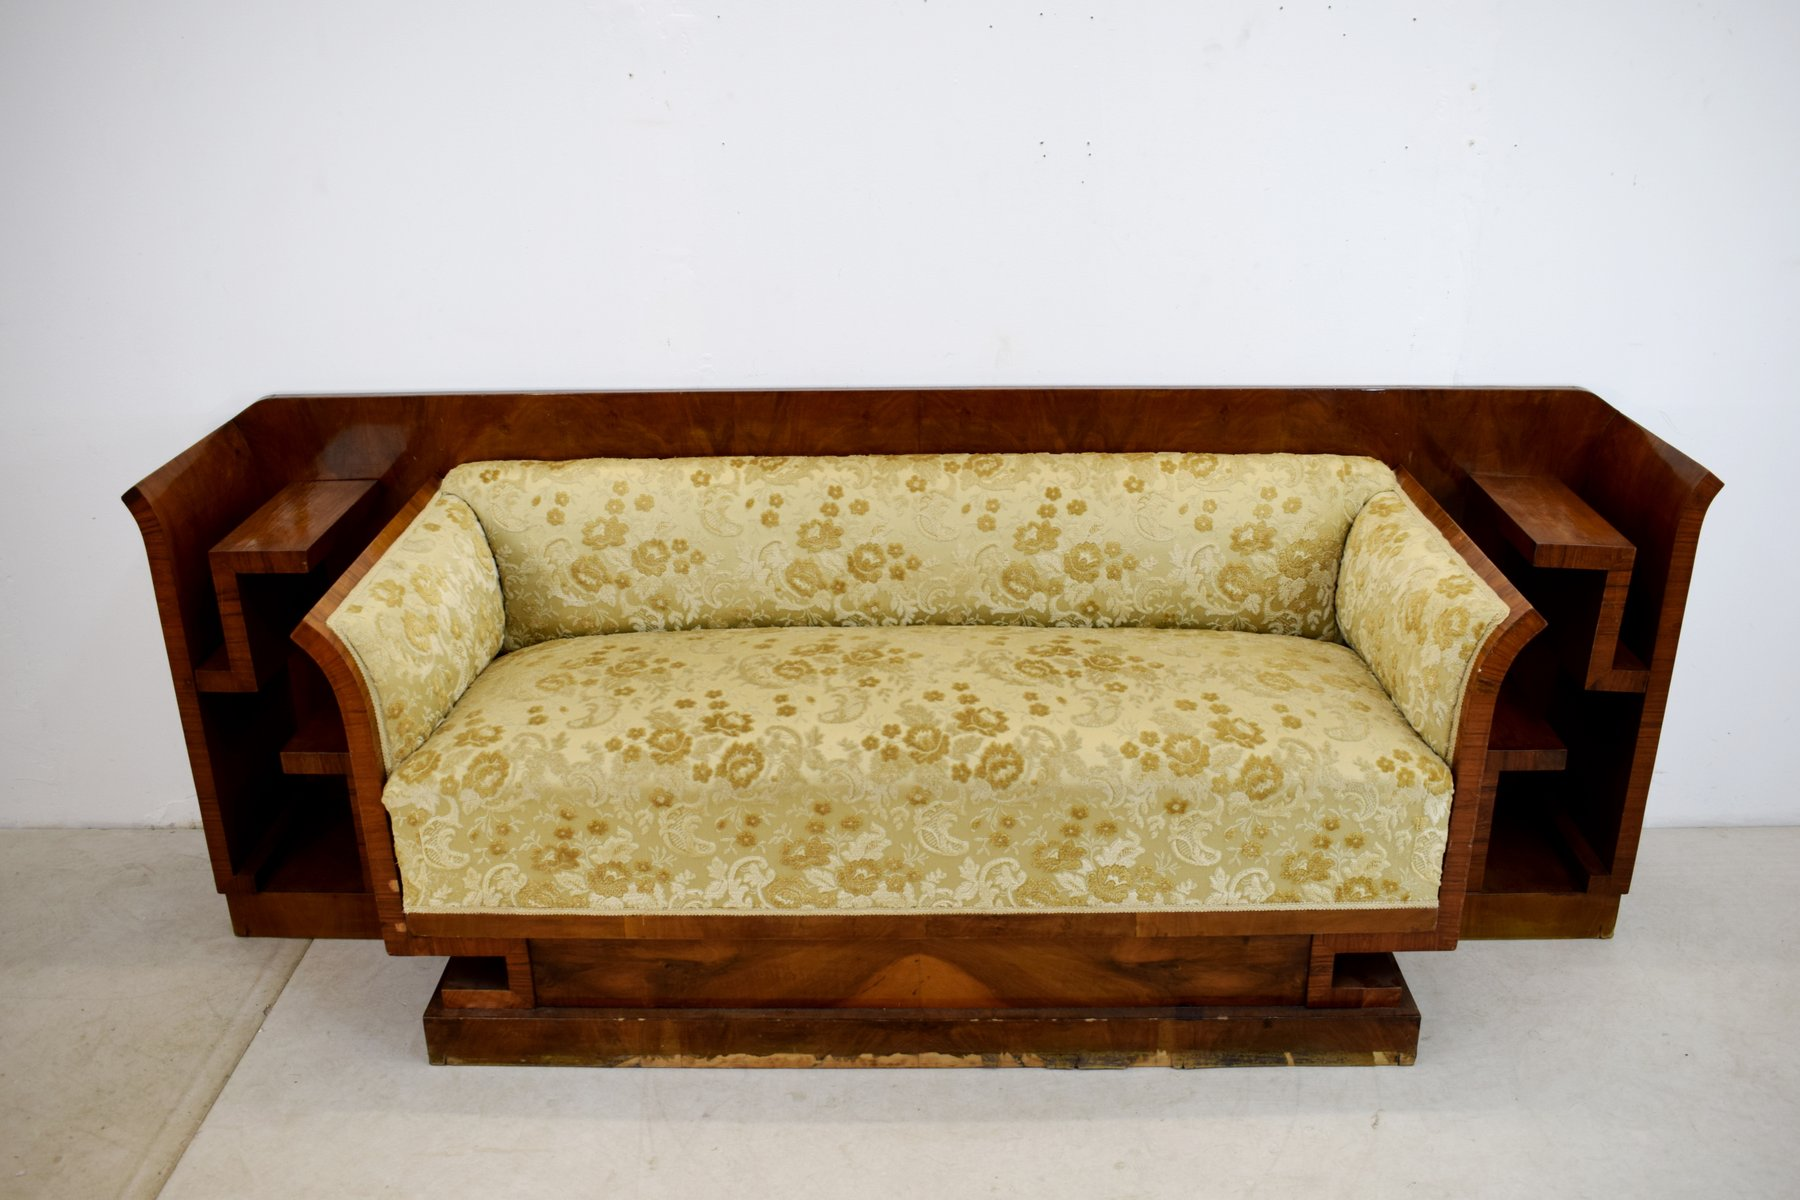 Vintage Art Deco Italian Sofa 1930s For Sale At Pamono